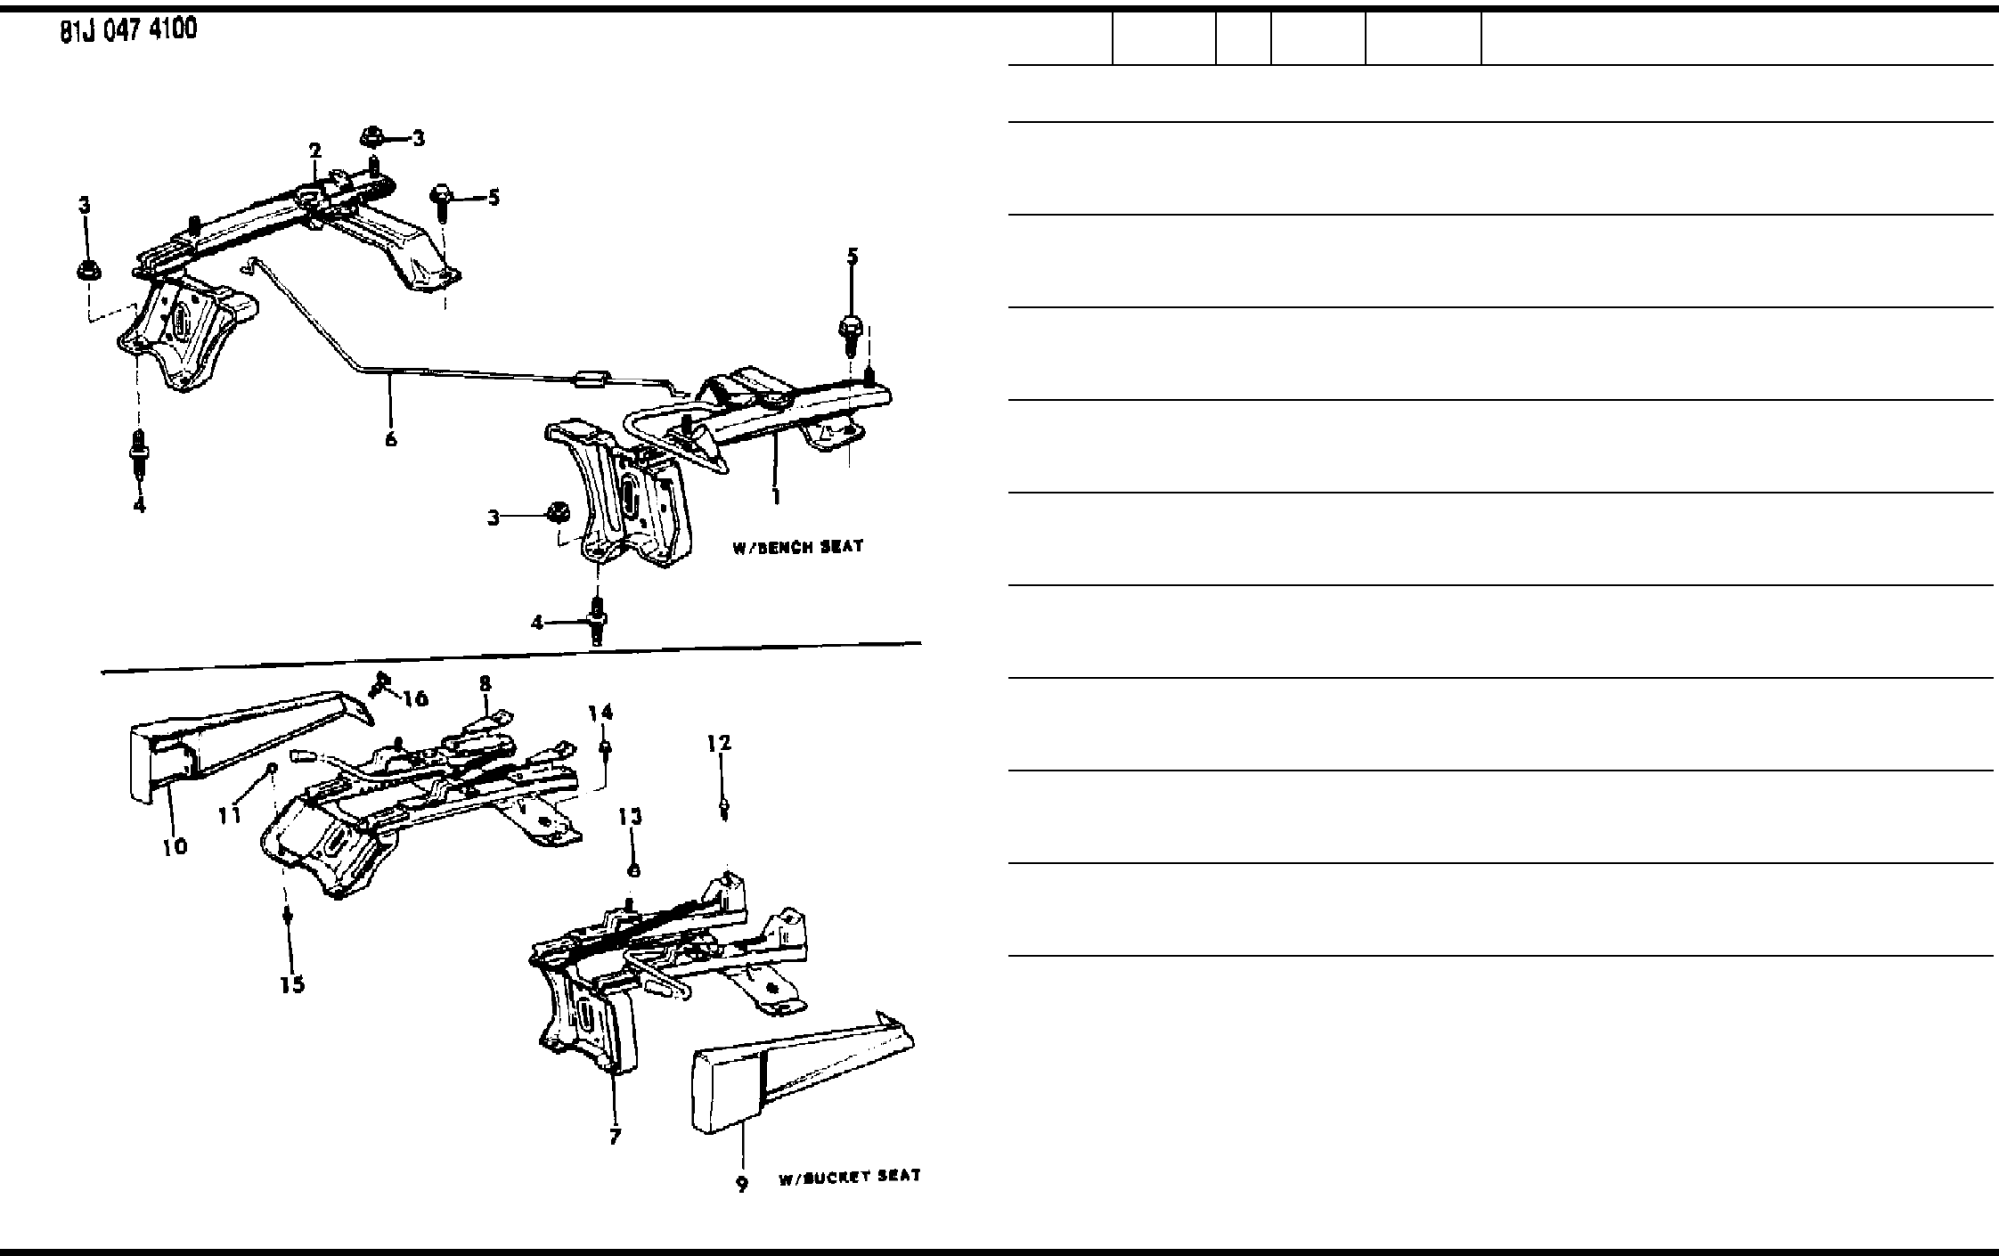 hight resolution of  jeep cherokee 1984 1986 misc doents parts catalogue pdf on jeep cj7 engine wiring harness diagram